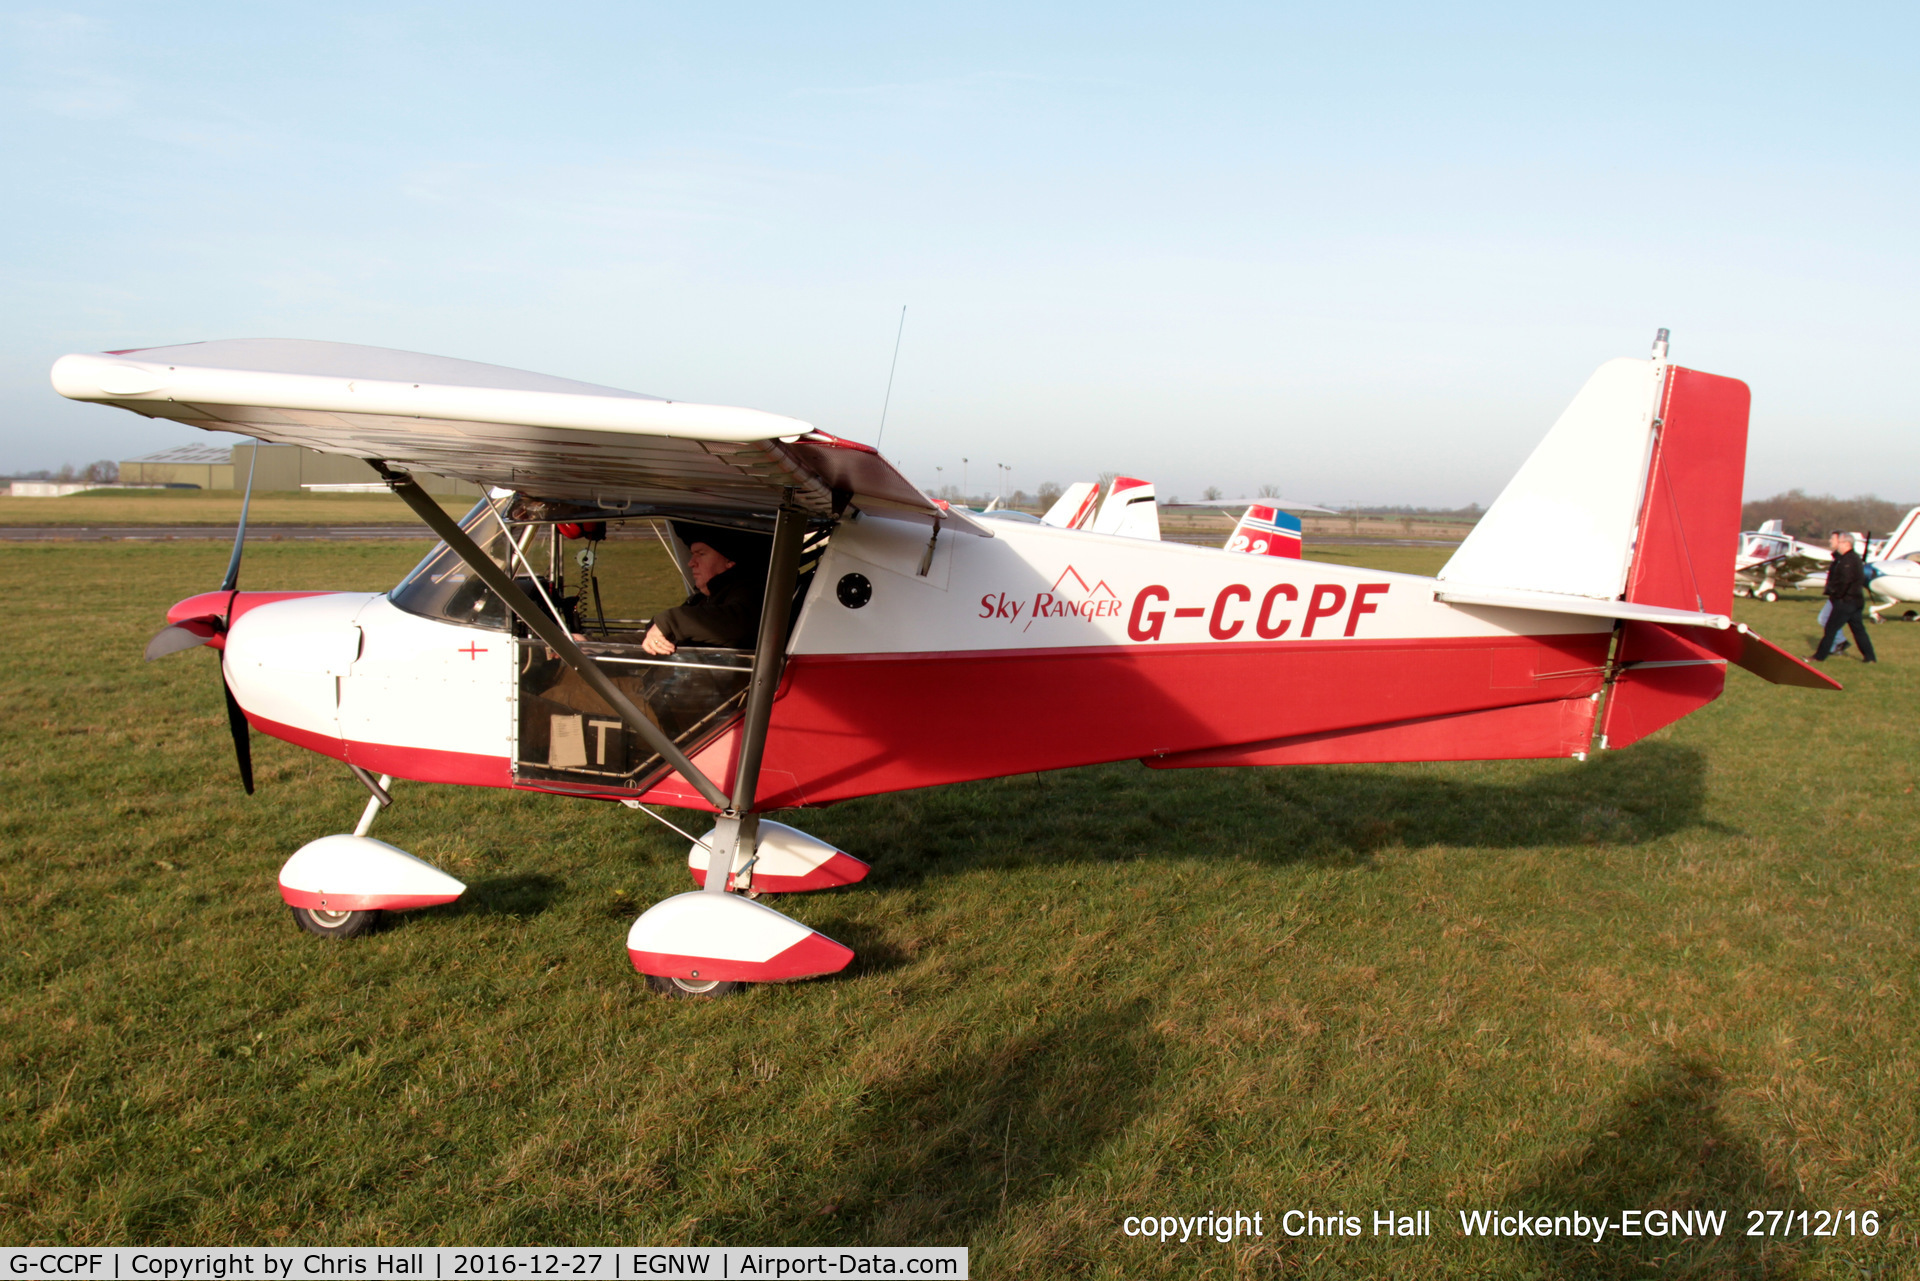 G-CCPF, 2004 Best Off Skyranger 912(2) C/N BMAA/HB/340, at the Wickenby